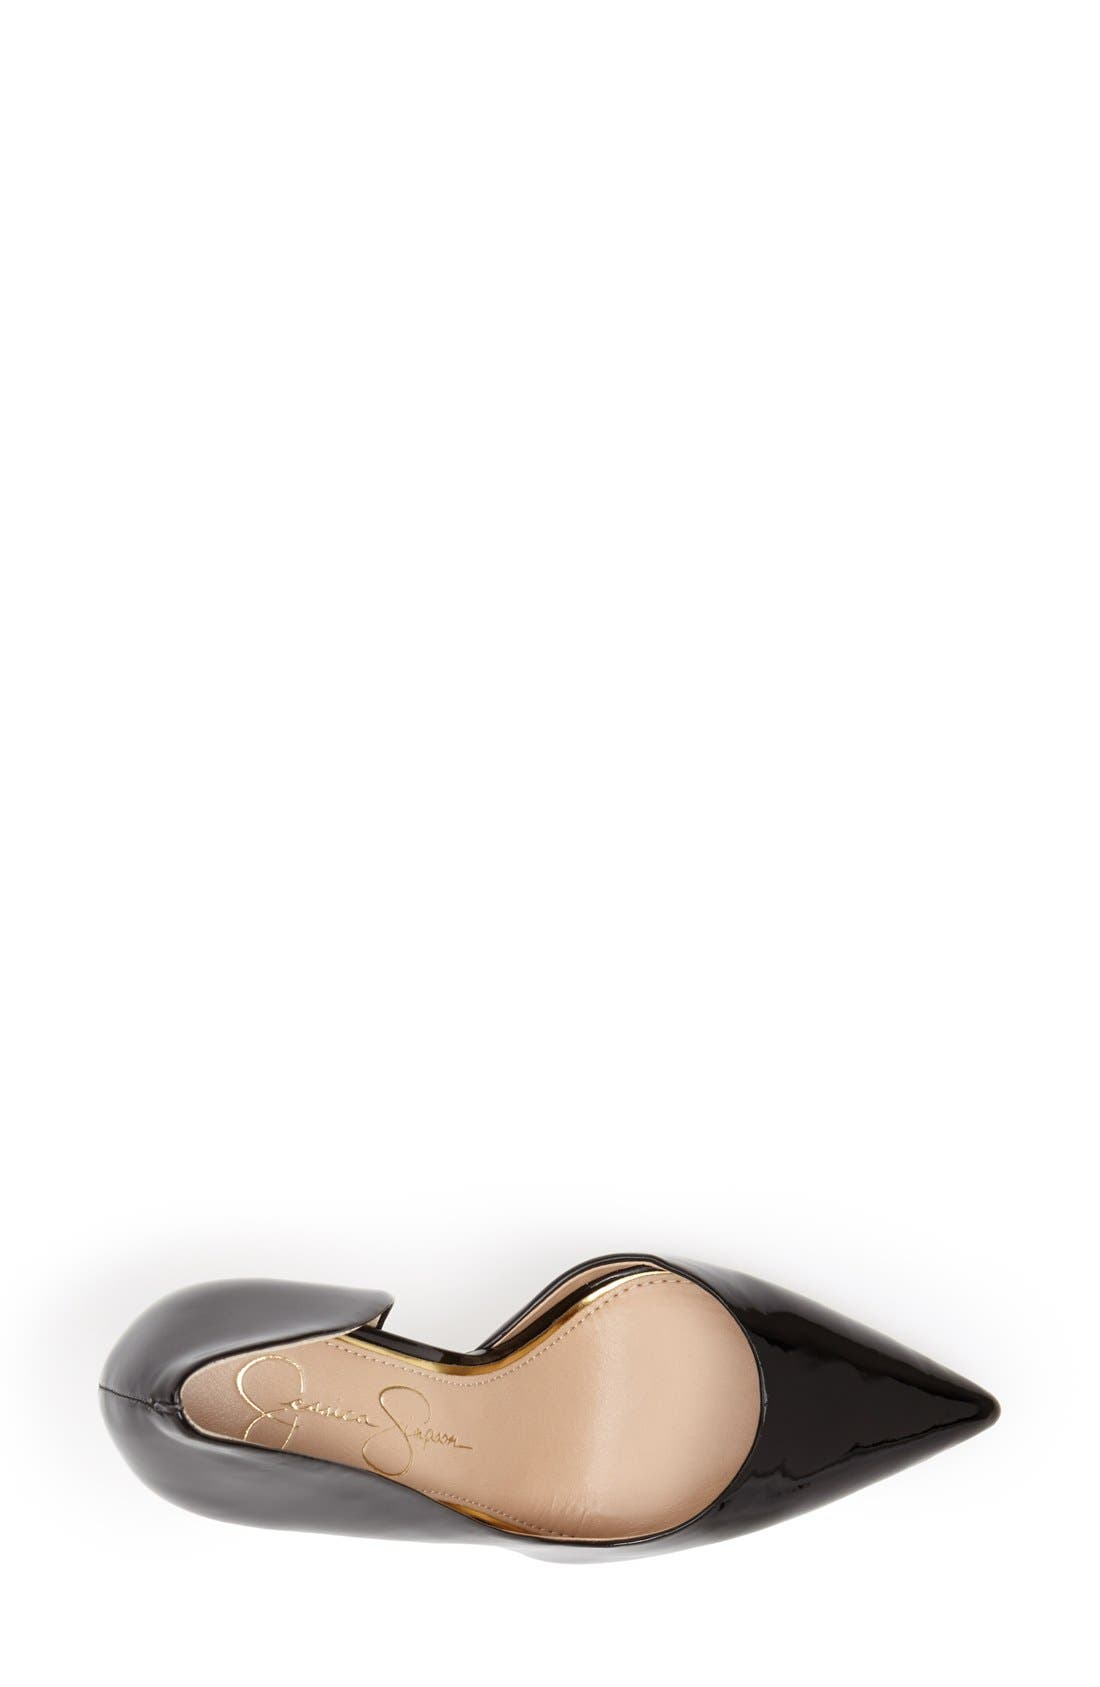 JESSICA SIMPSON,                             'Claudette' Half d'Orsay Pump,                             Alternate thumbnail 4, color,                             001